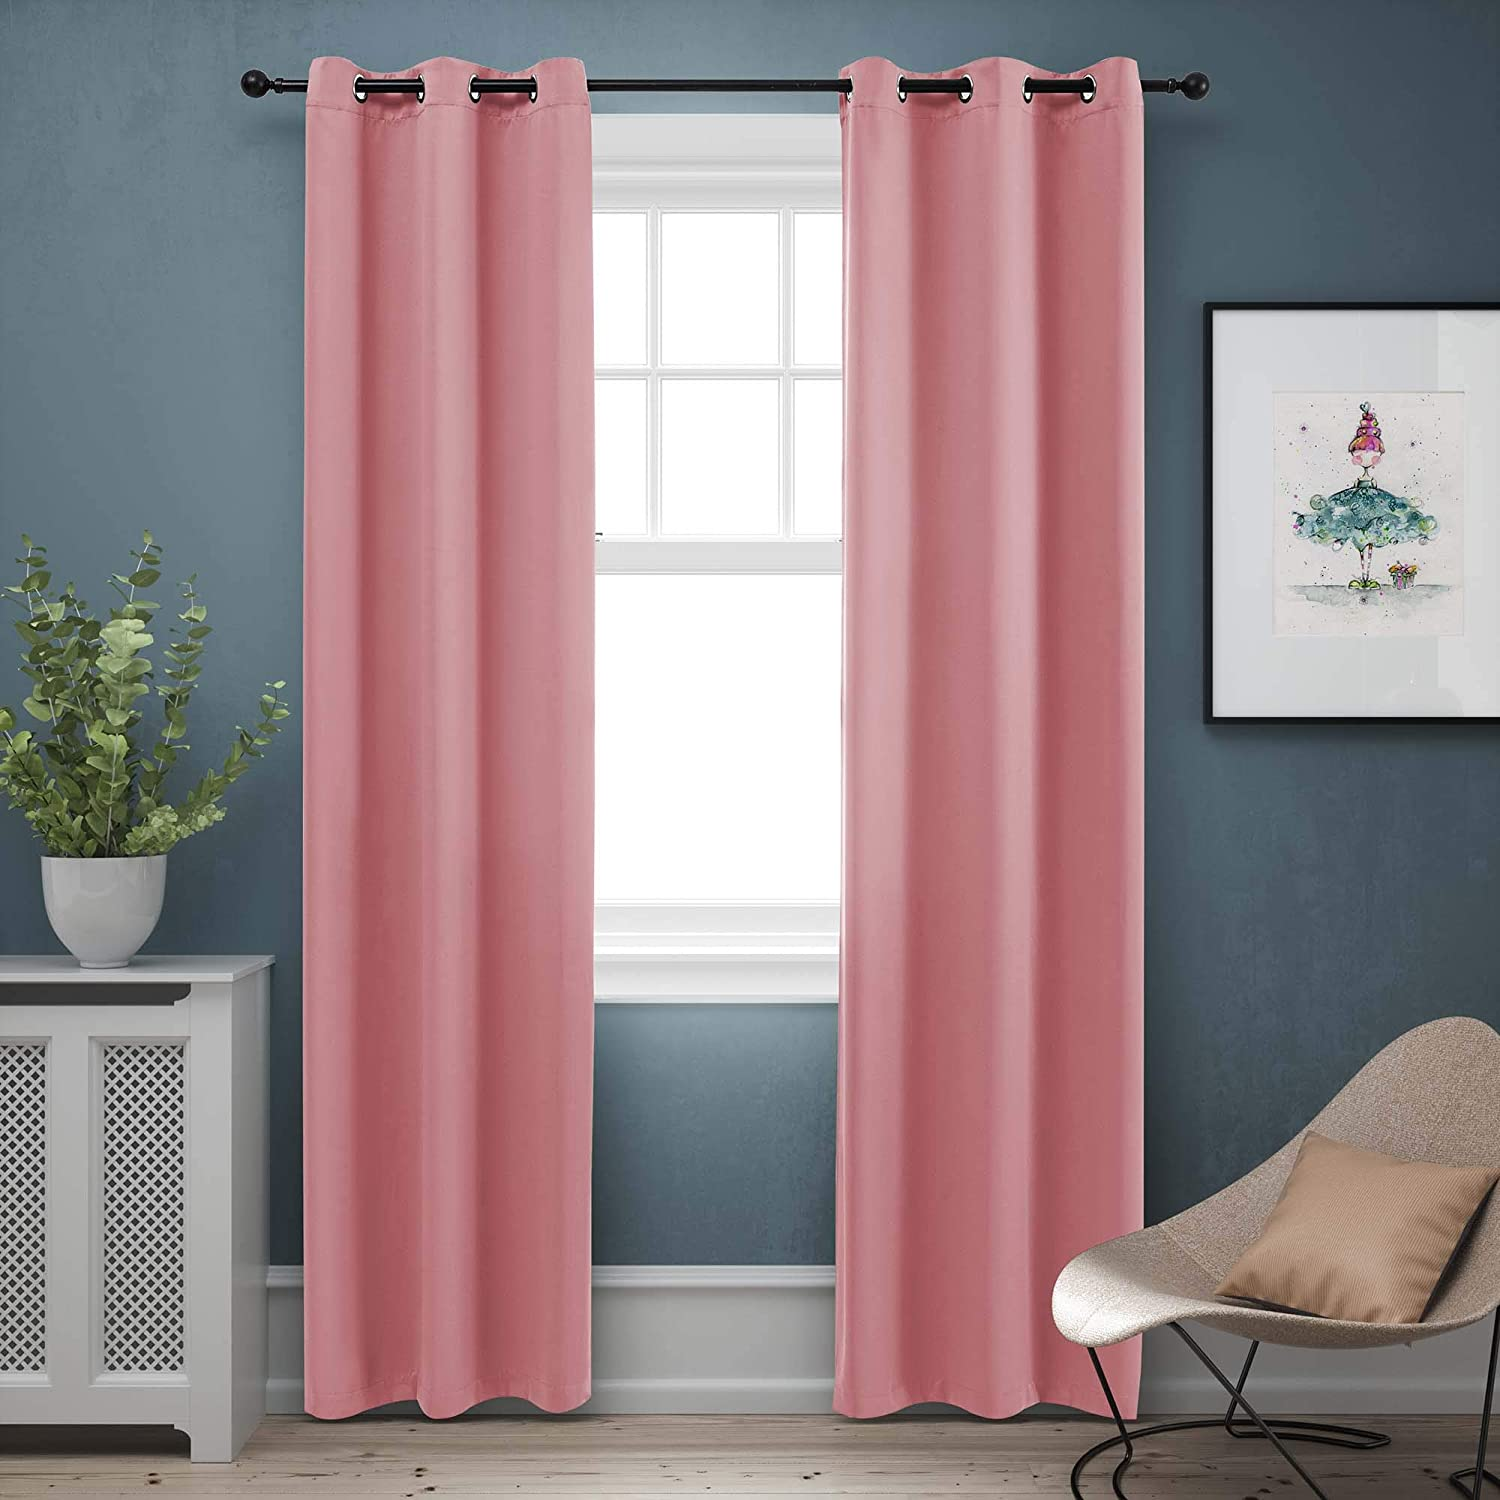 BLUEROCK Blackout Curtains Room Darkening Thermal Insulated Home Fashion Machine Washable Ring Top Light Blocking Curtains for Kids Room(Set of 2, 42 x 84 Inches in Pink)